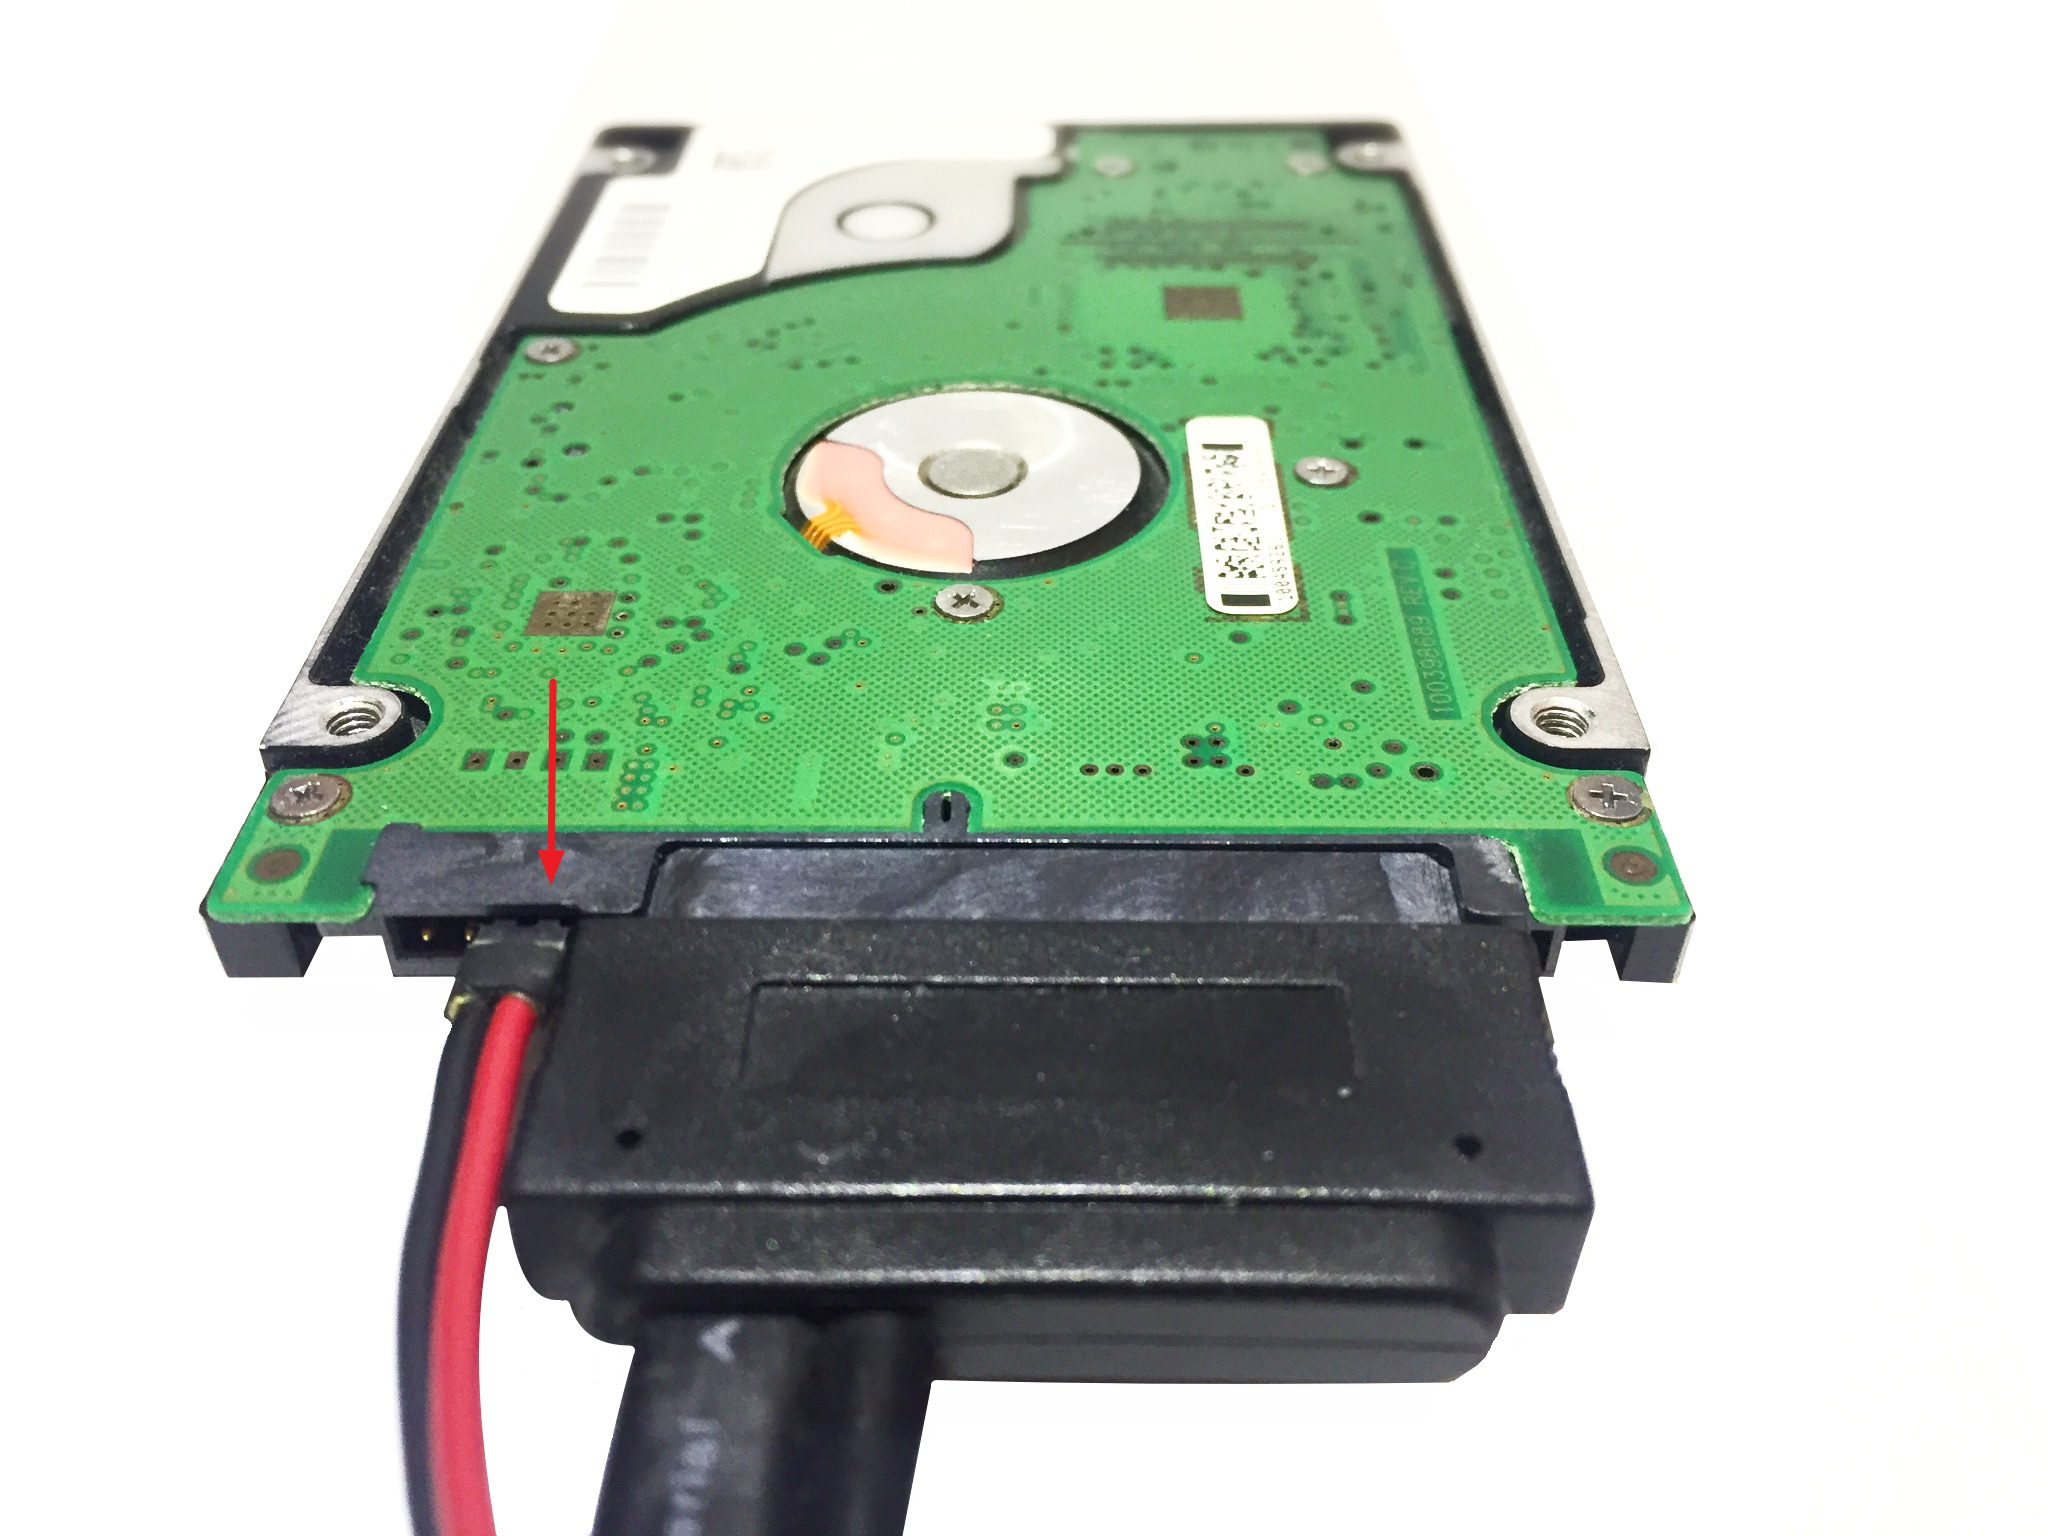 seagate sata 2.5 connected